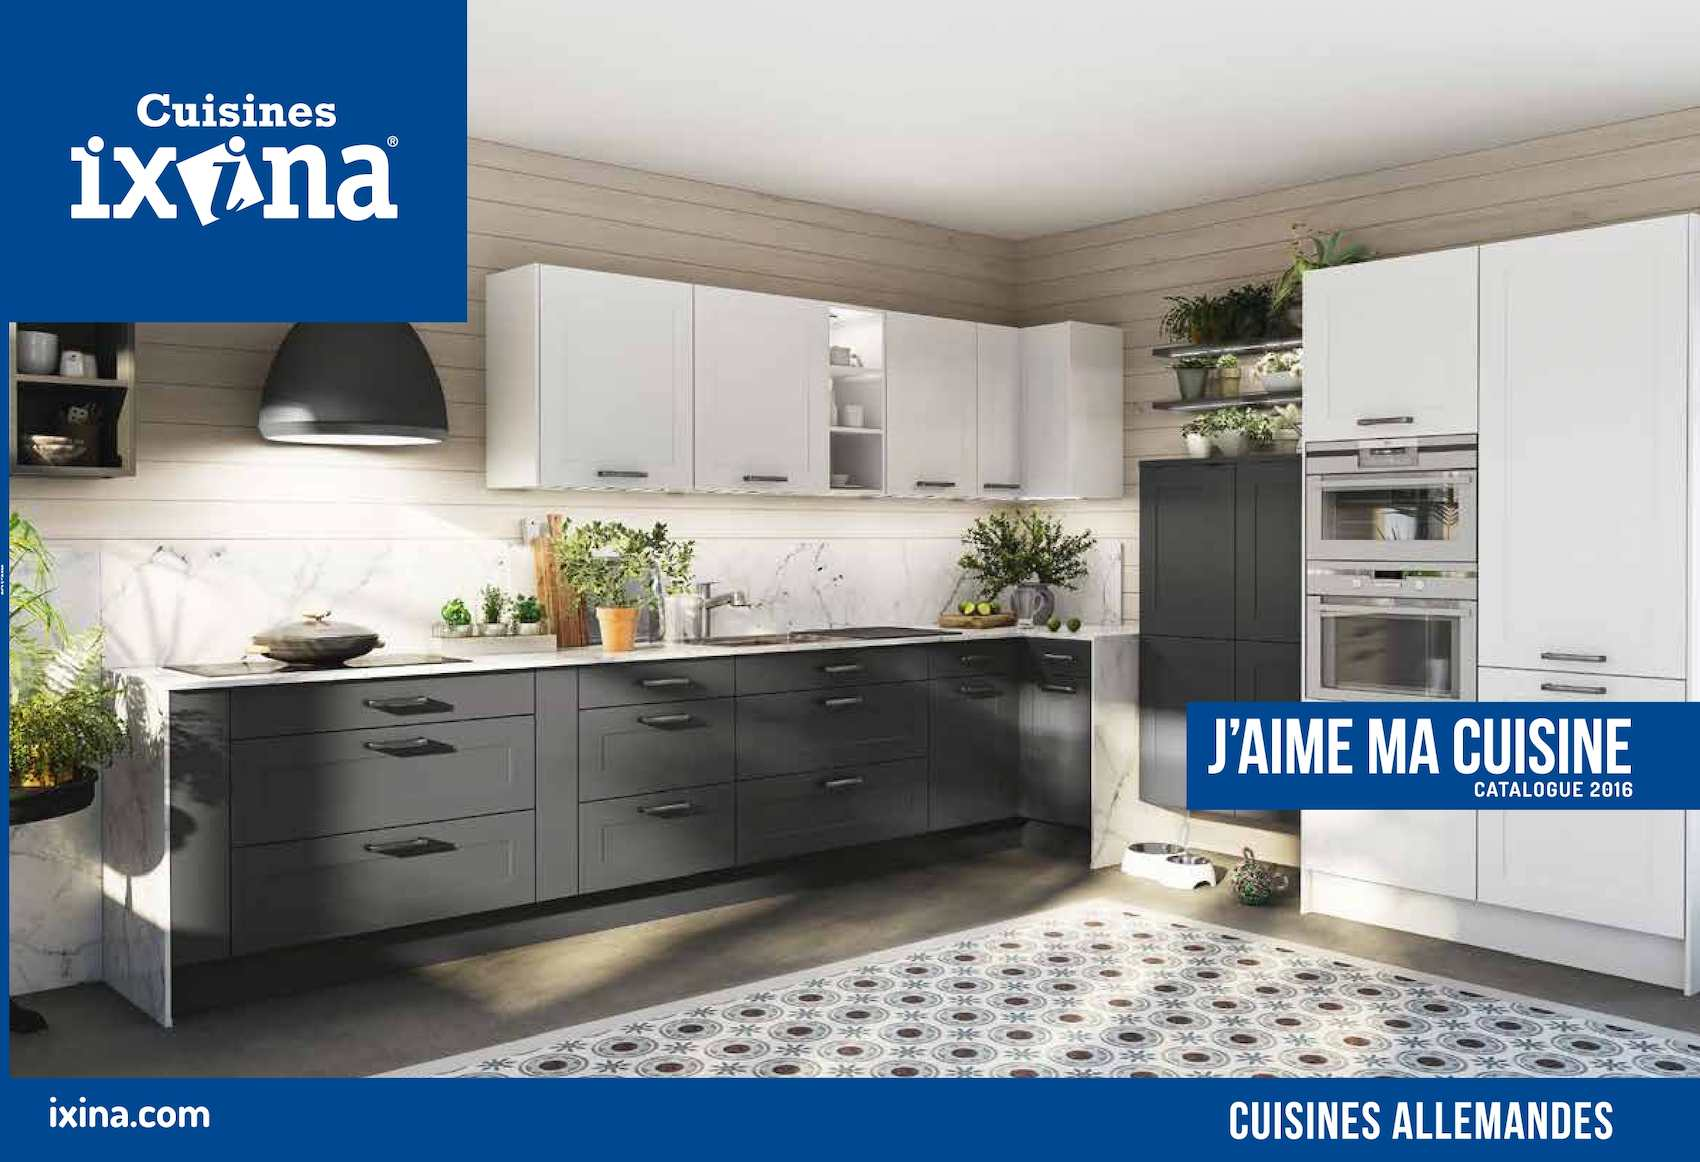 Calam o catalogue ixina 2016 final for Voir des cuisines amenagees